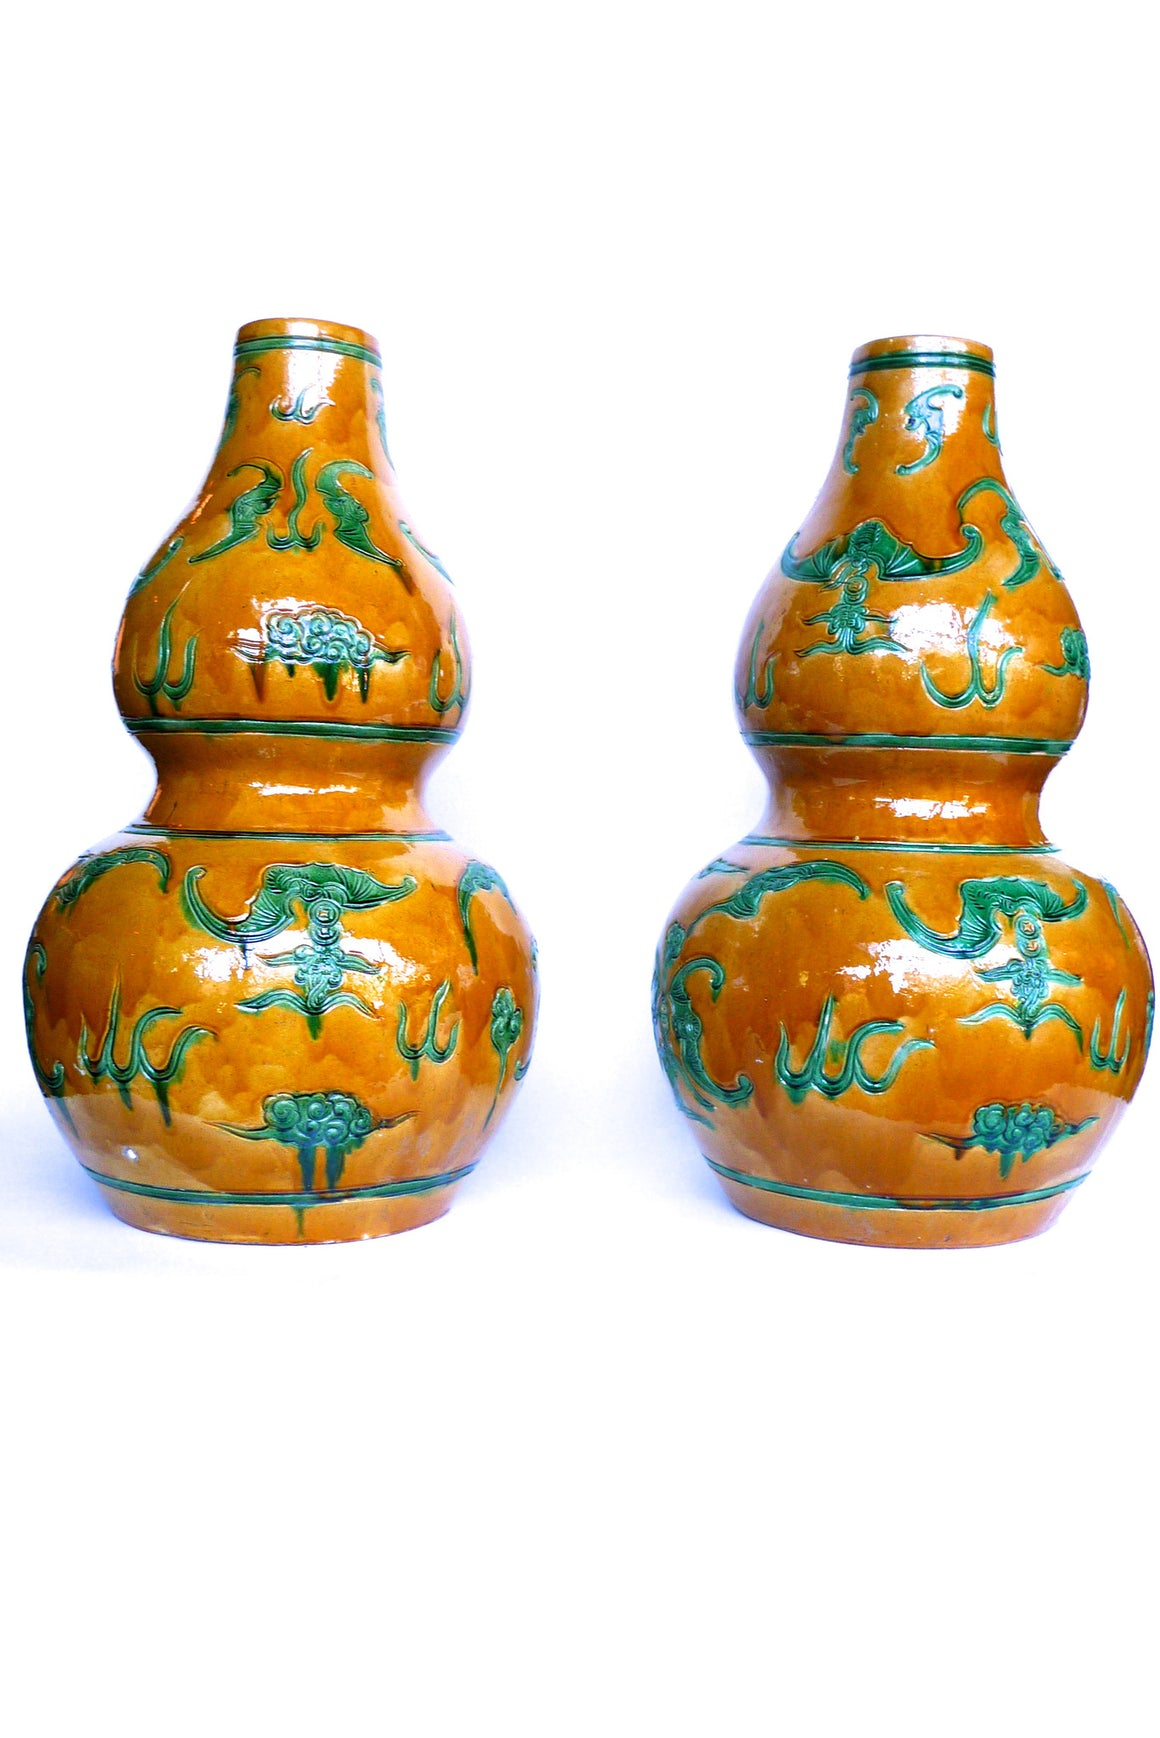 20th Century Chinese Vases